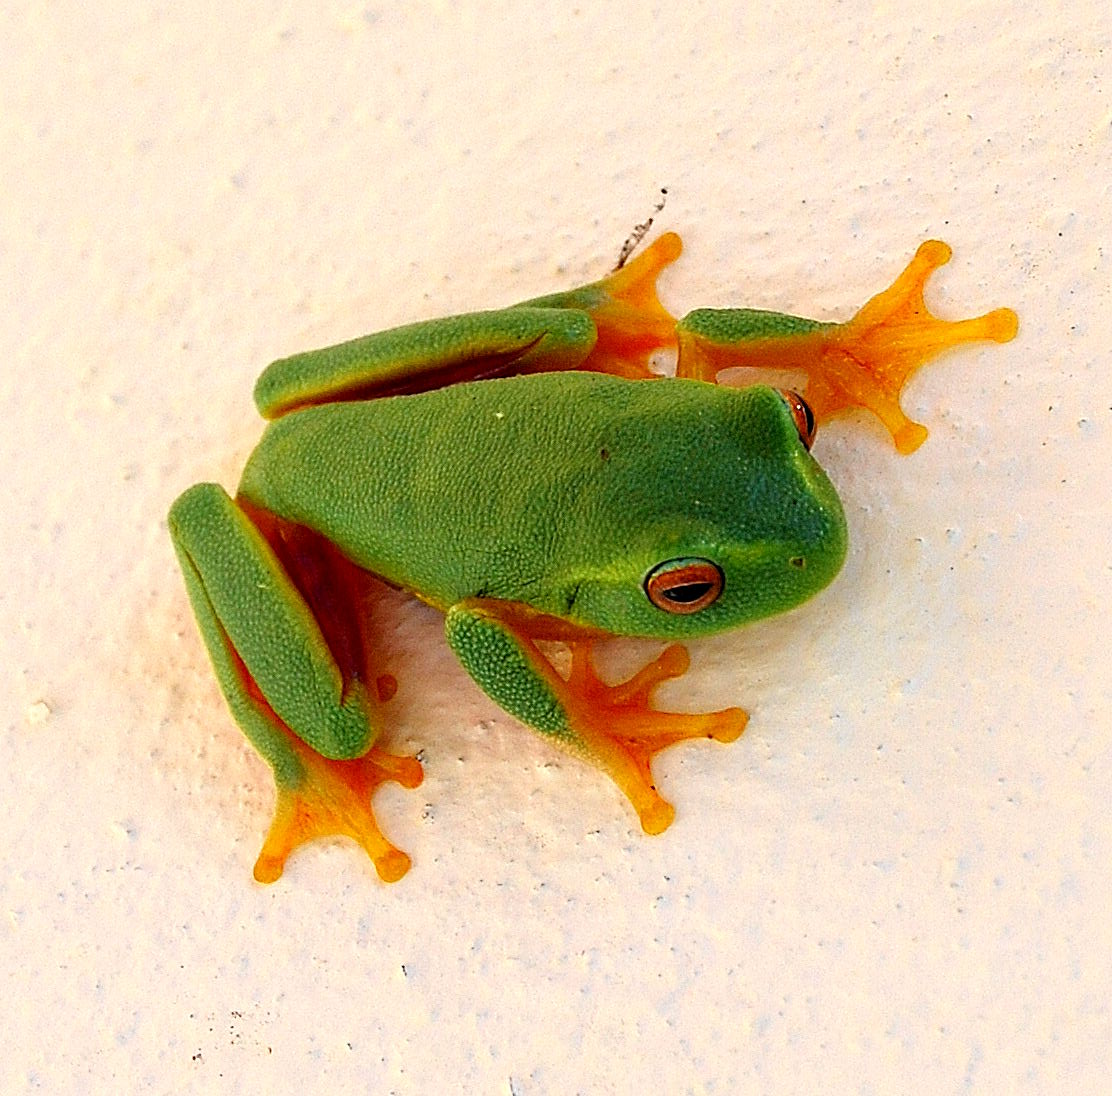 Do Goliath Frogs Live On Land Or In Water